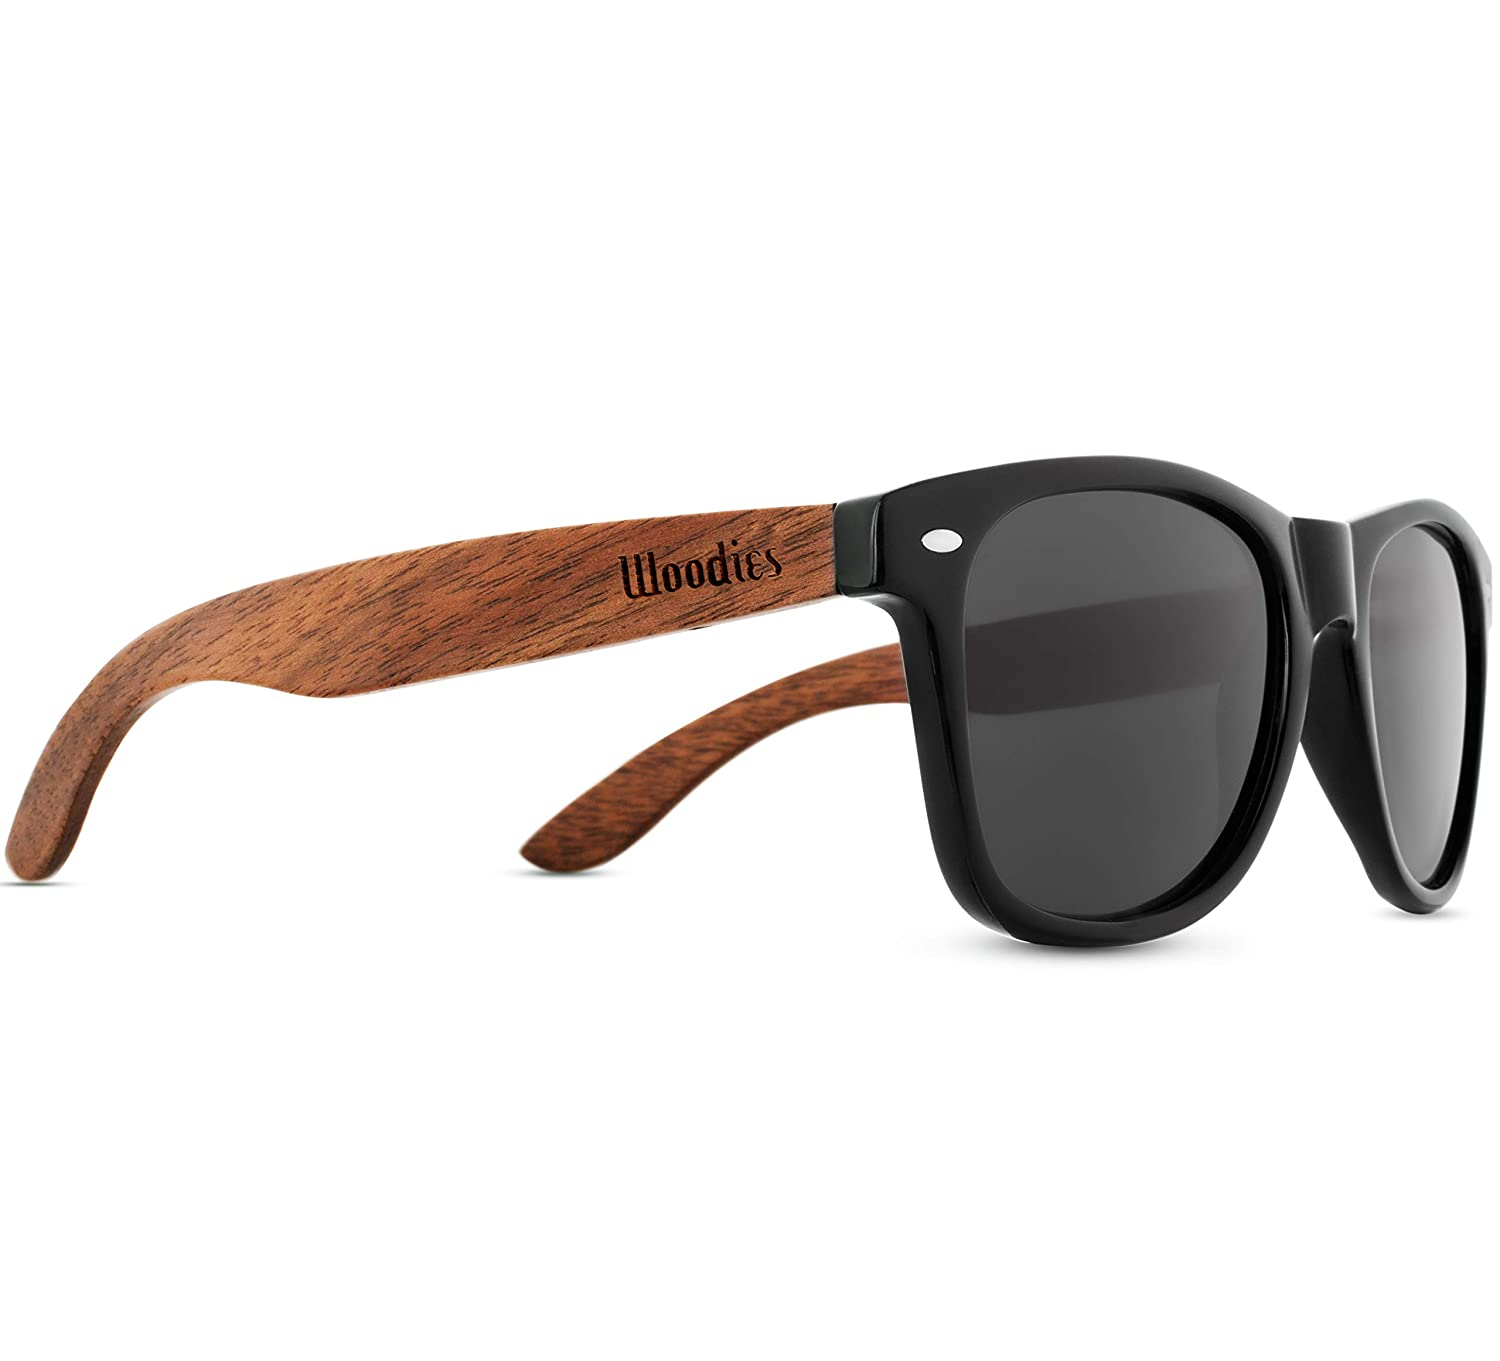 cae44bef7904 Amazon.com  WOODIES Walnut Wood Sunglasses with Polarized Lens in Wood  Display Box for Men or Women  Clothing